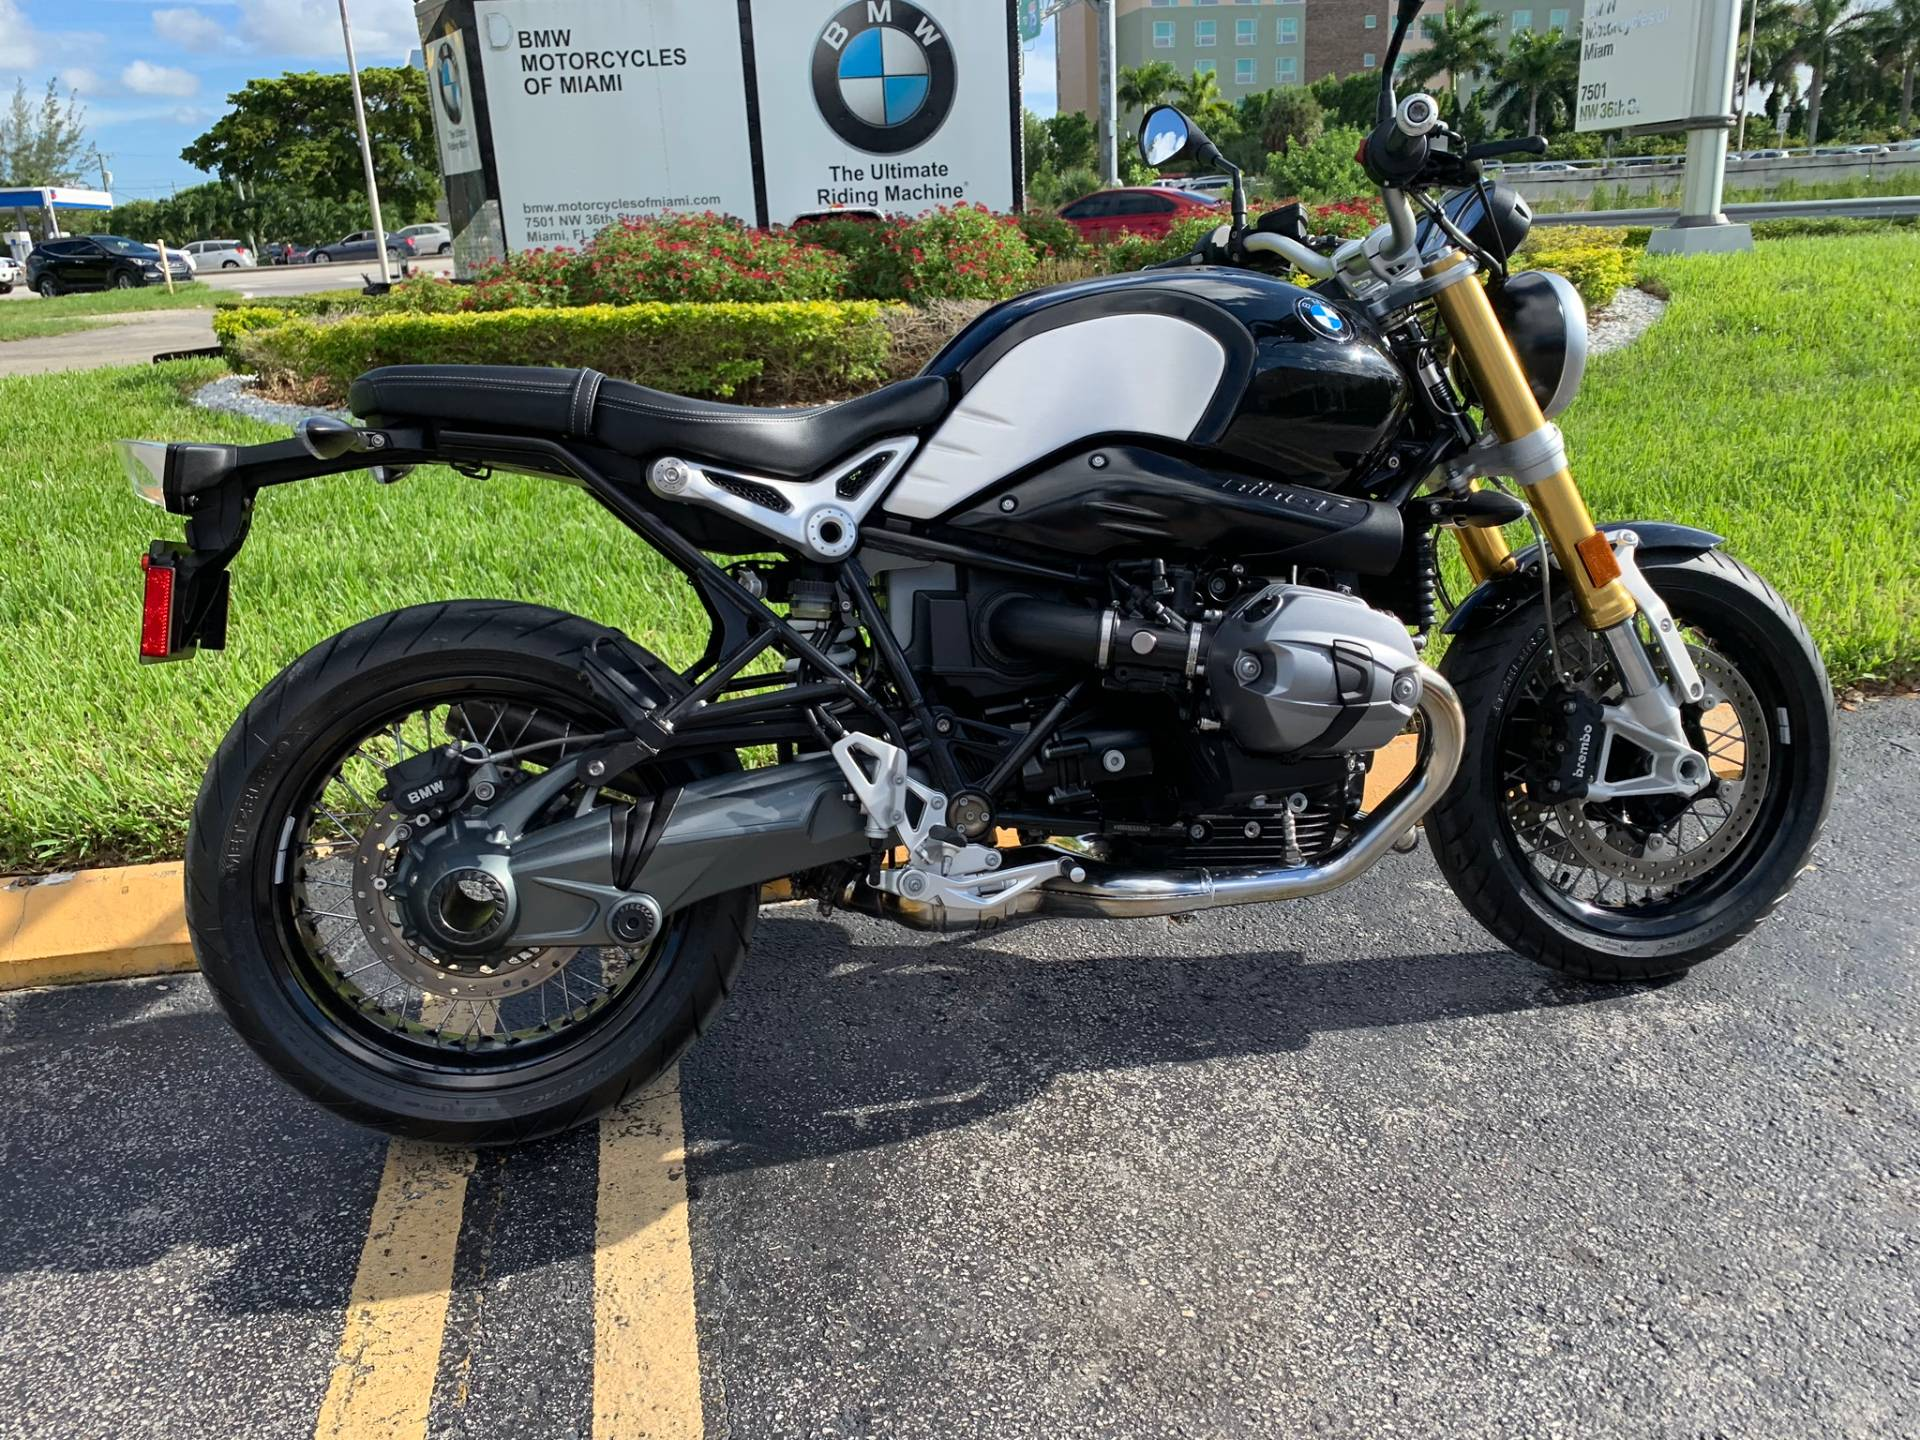 Used 2016 BMW R NineT for sale, BMW for sale, BMW Motorcycle Café Racer, new BMW Caffe, Cafe Racer, BMW. BMW Motorcycles of Miami, Motorcycles of Miami, Motorcycles Miami, New Motorcycles, Used Motorcycles, pre-owned. #BMWMotorcyclesOfMiami #MotorcyclesOfMiami. - Photo 28